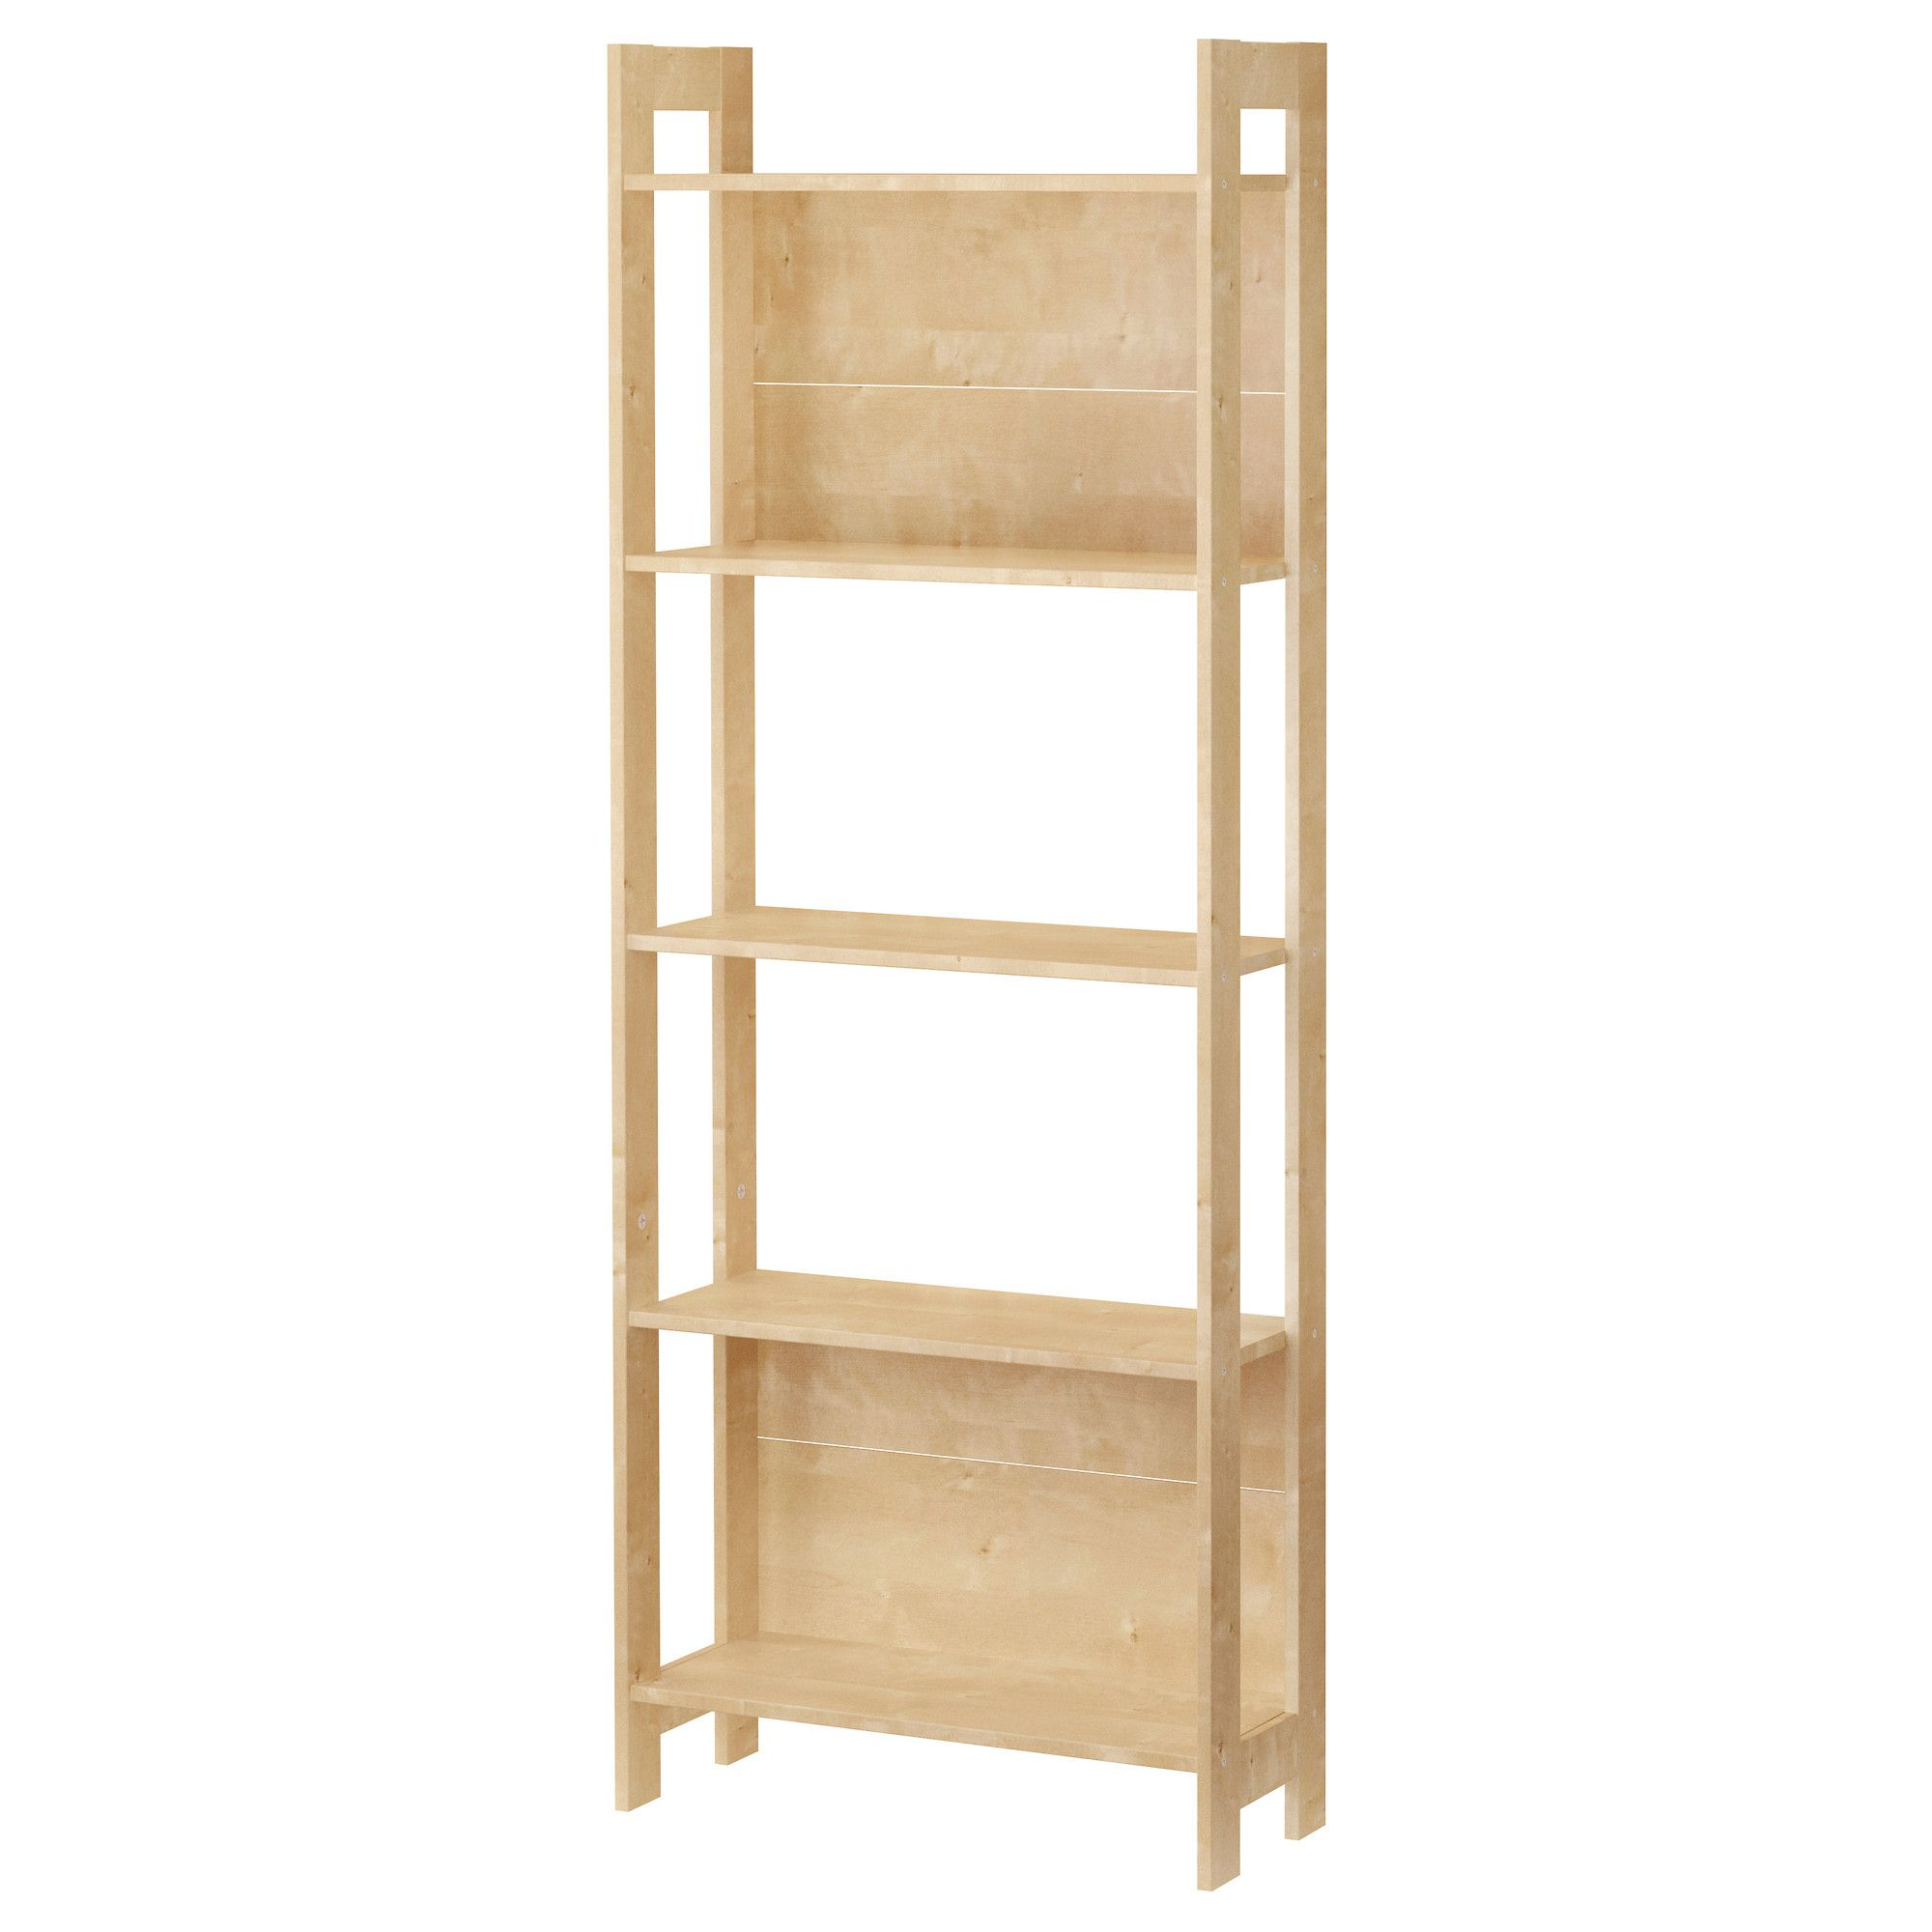 Regal Shelfy Laiva Regal Birkenachbildung Ikea Shopping Shelves And